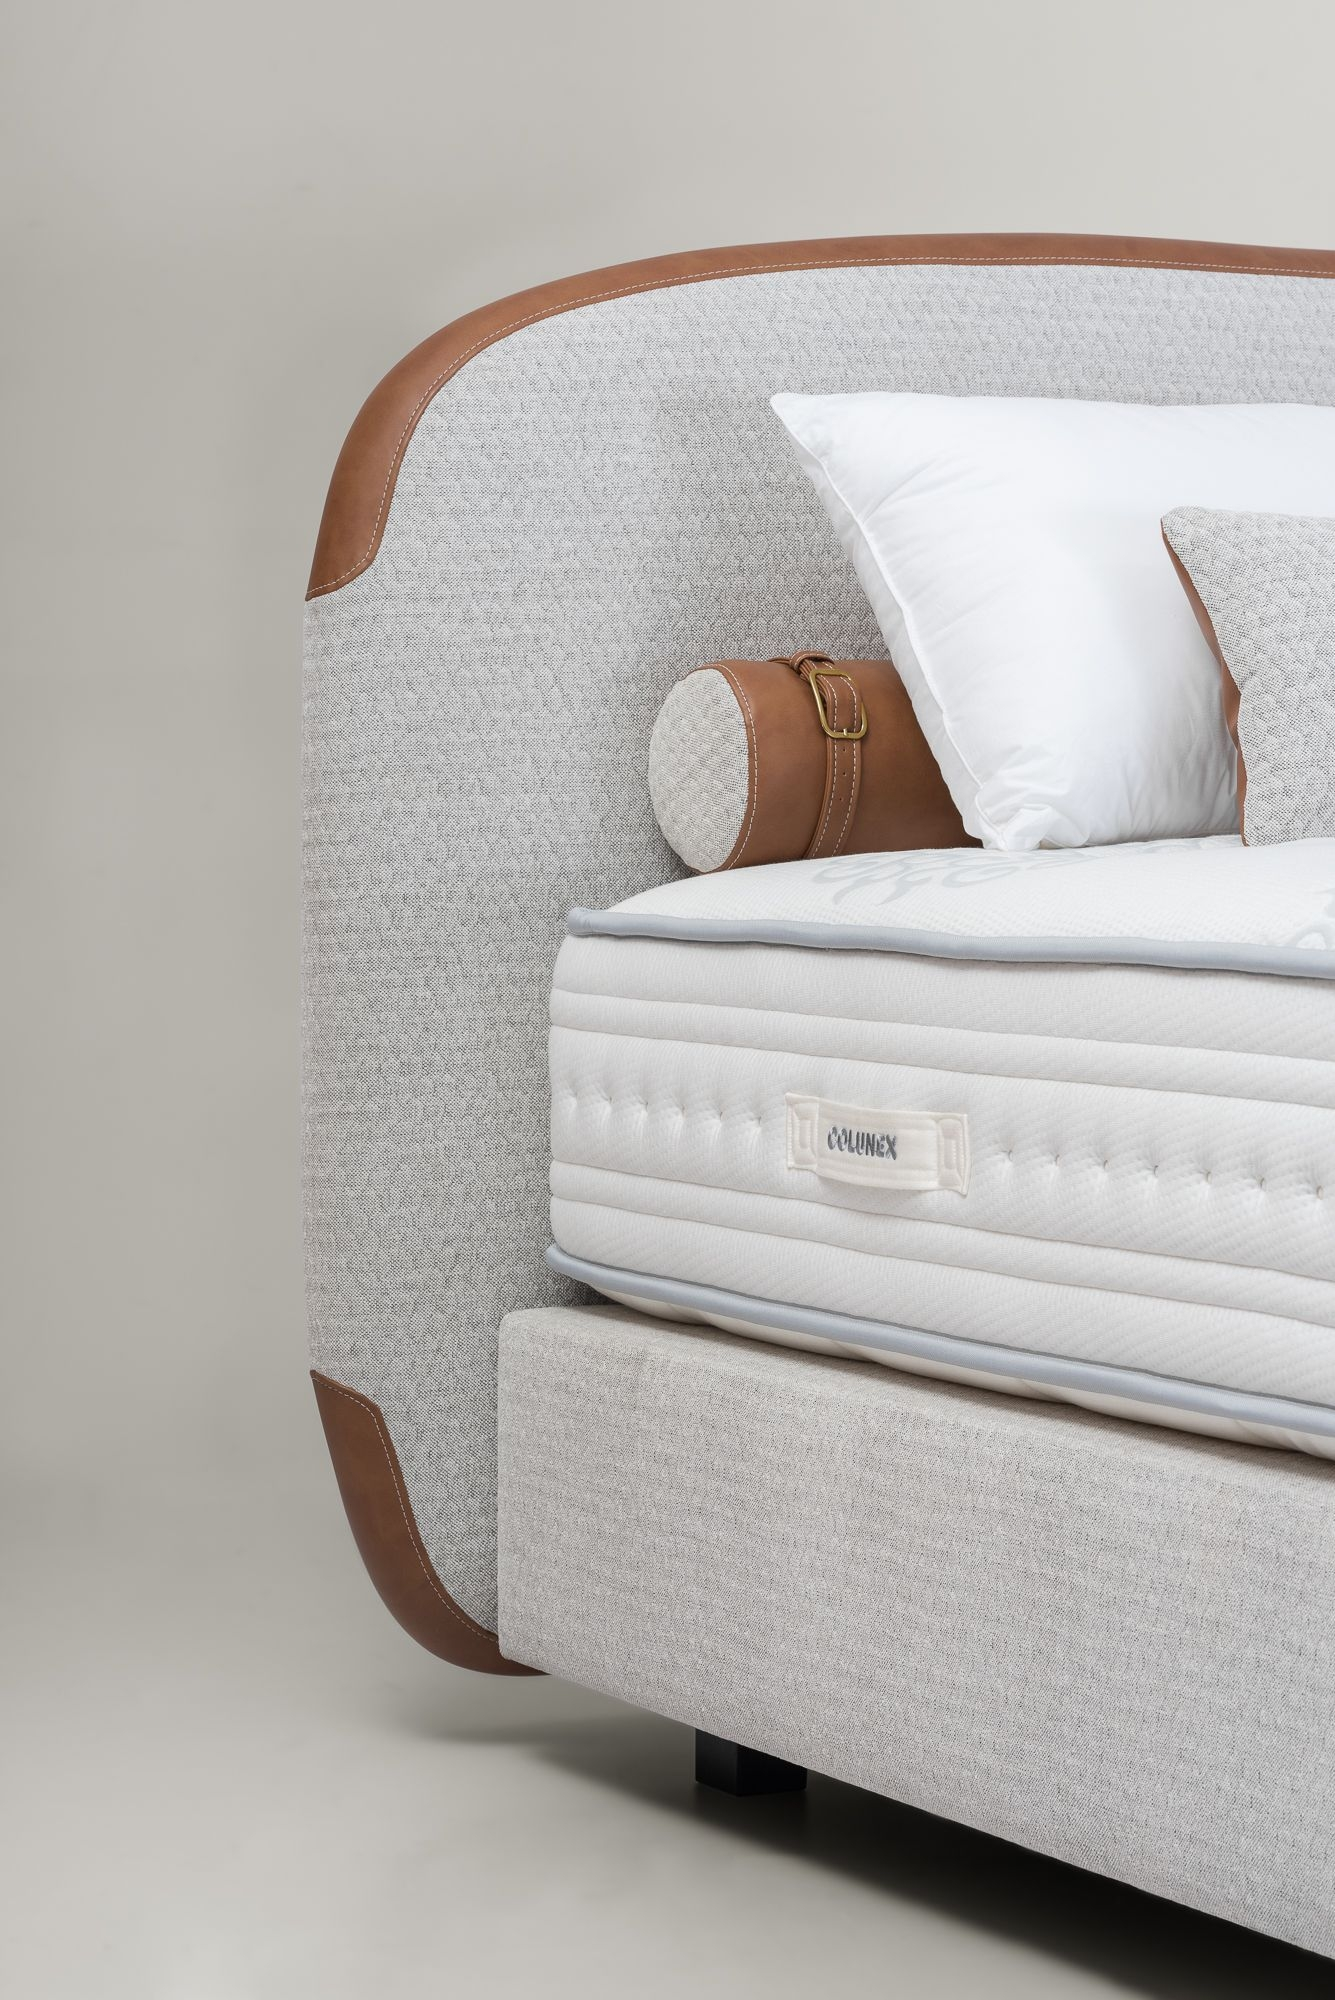 Amazing Headboard Design Ideas For Beds That Look Great19